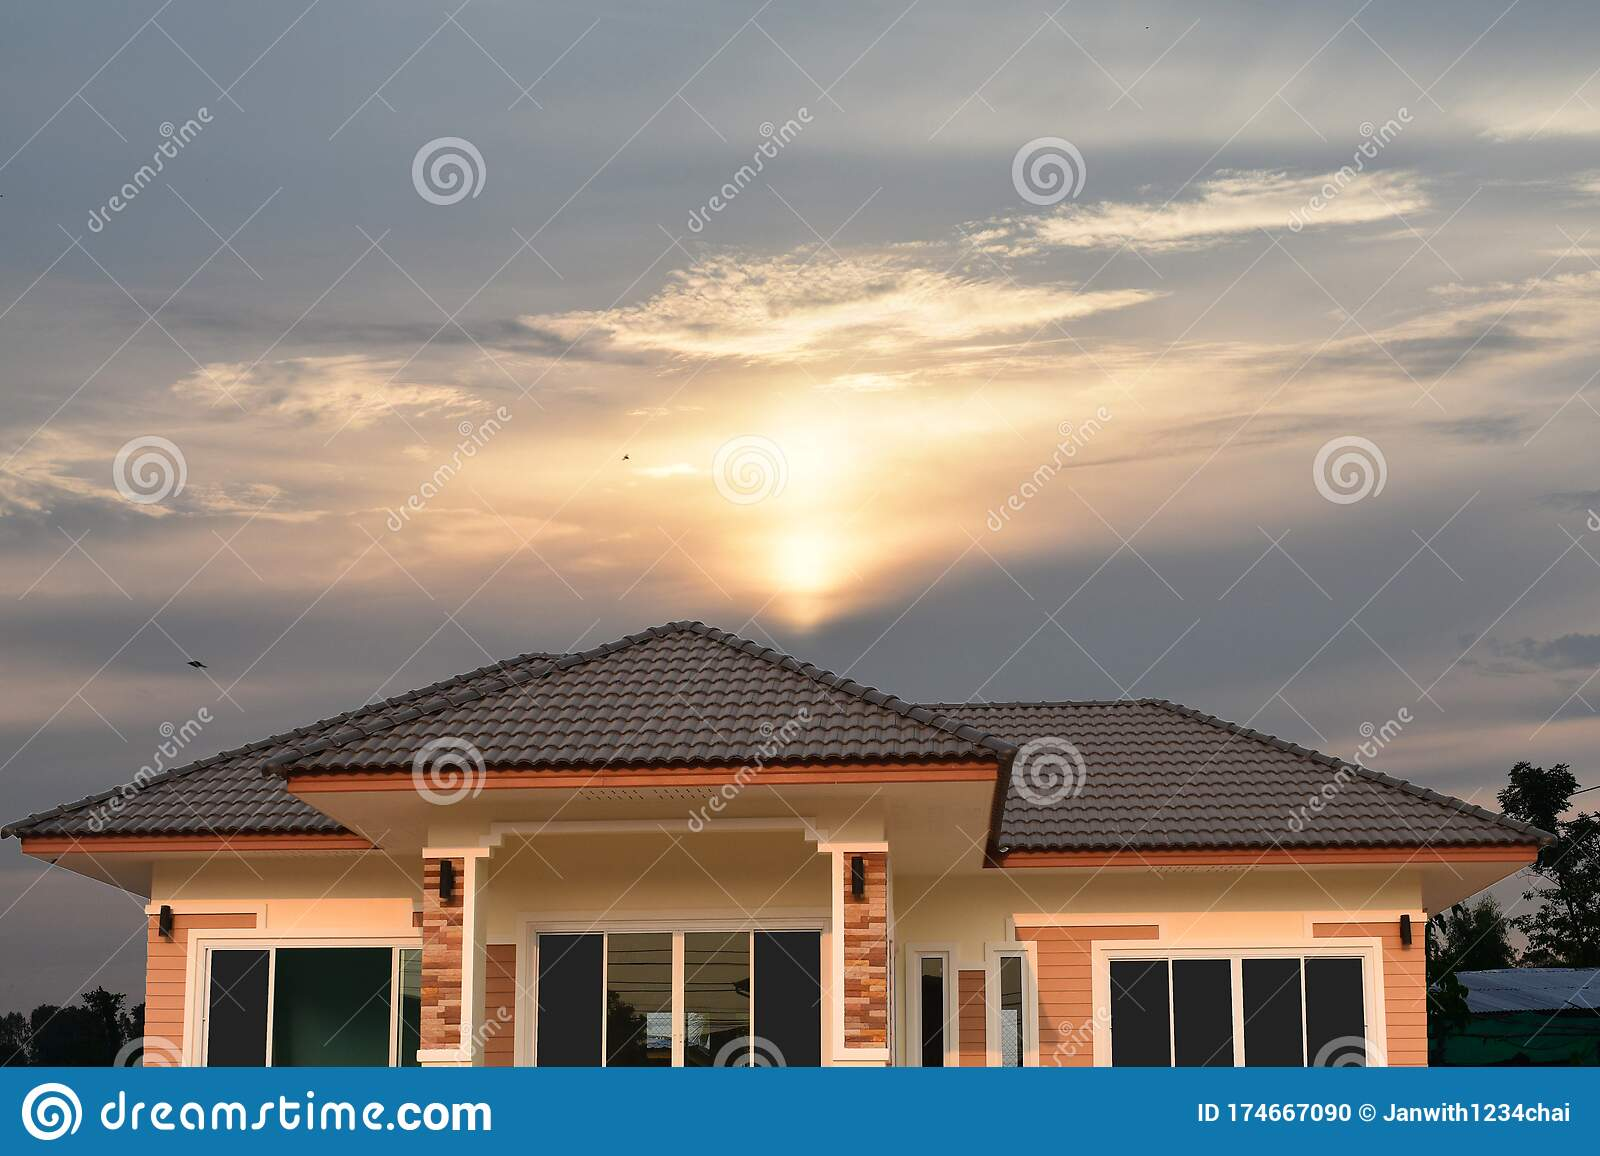 The Tile Roof With Morning Sun Is Perfect For Designs And Backgrounds Stock Photo Image Of Idea Popular 174667090